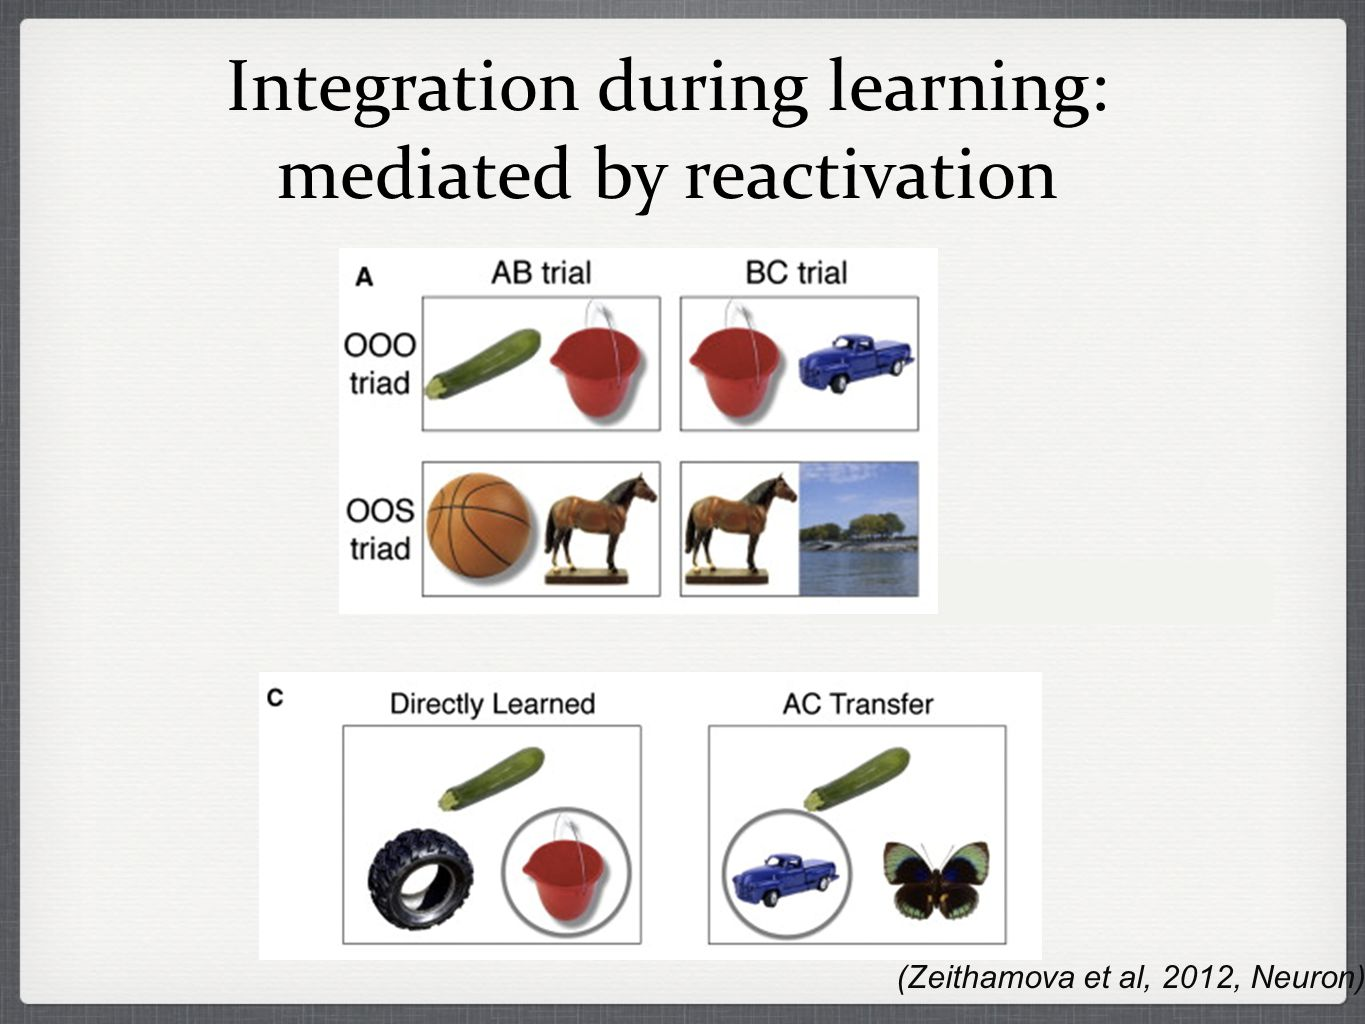 Integration during learning: mediated by reactivation (Zeithamova et al, 2012, Neuron)